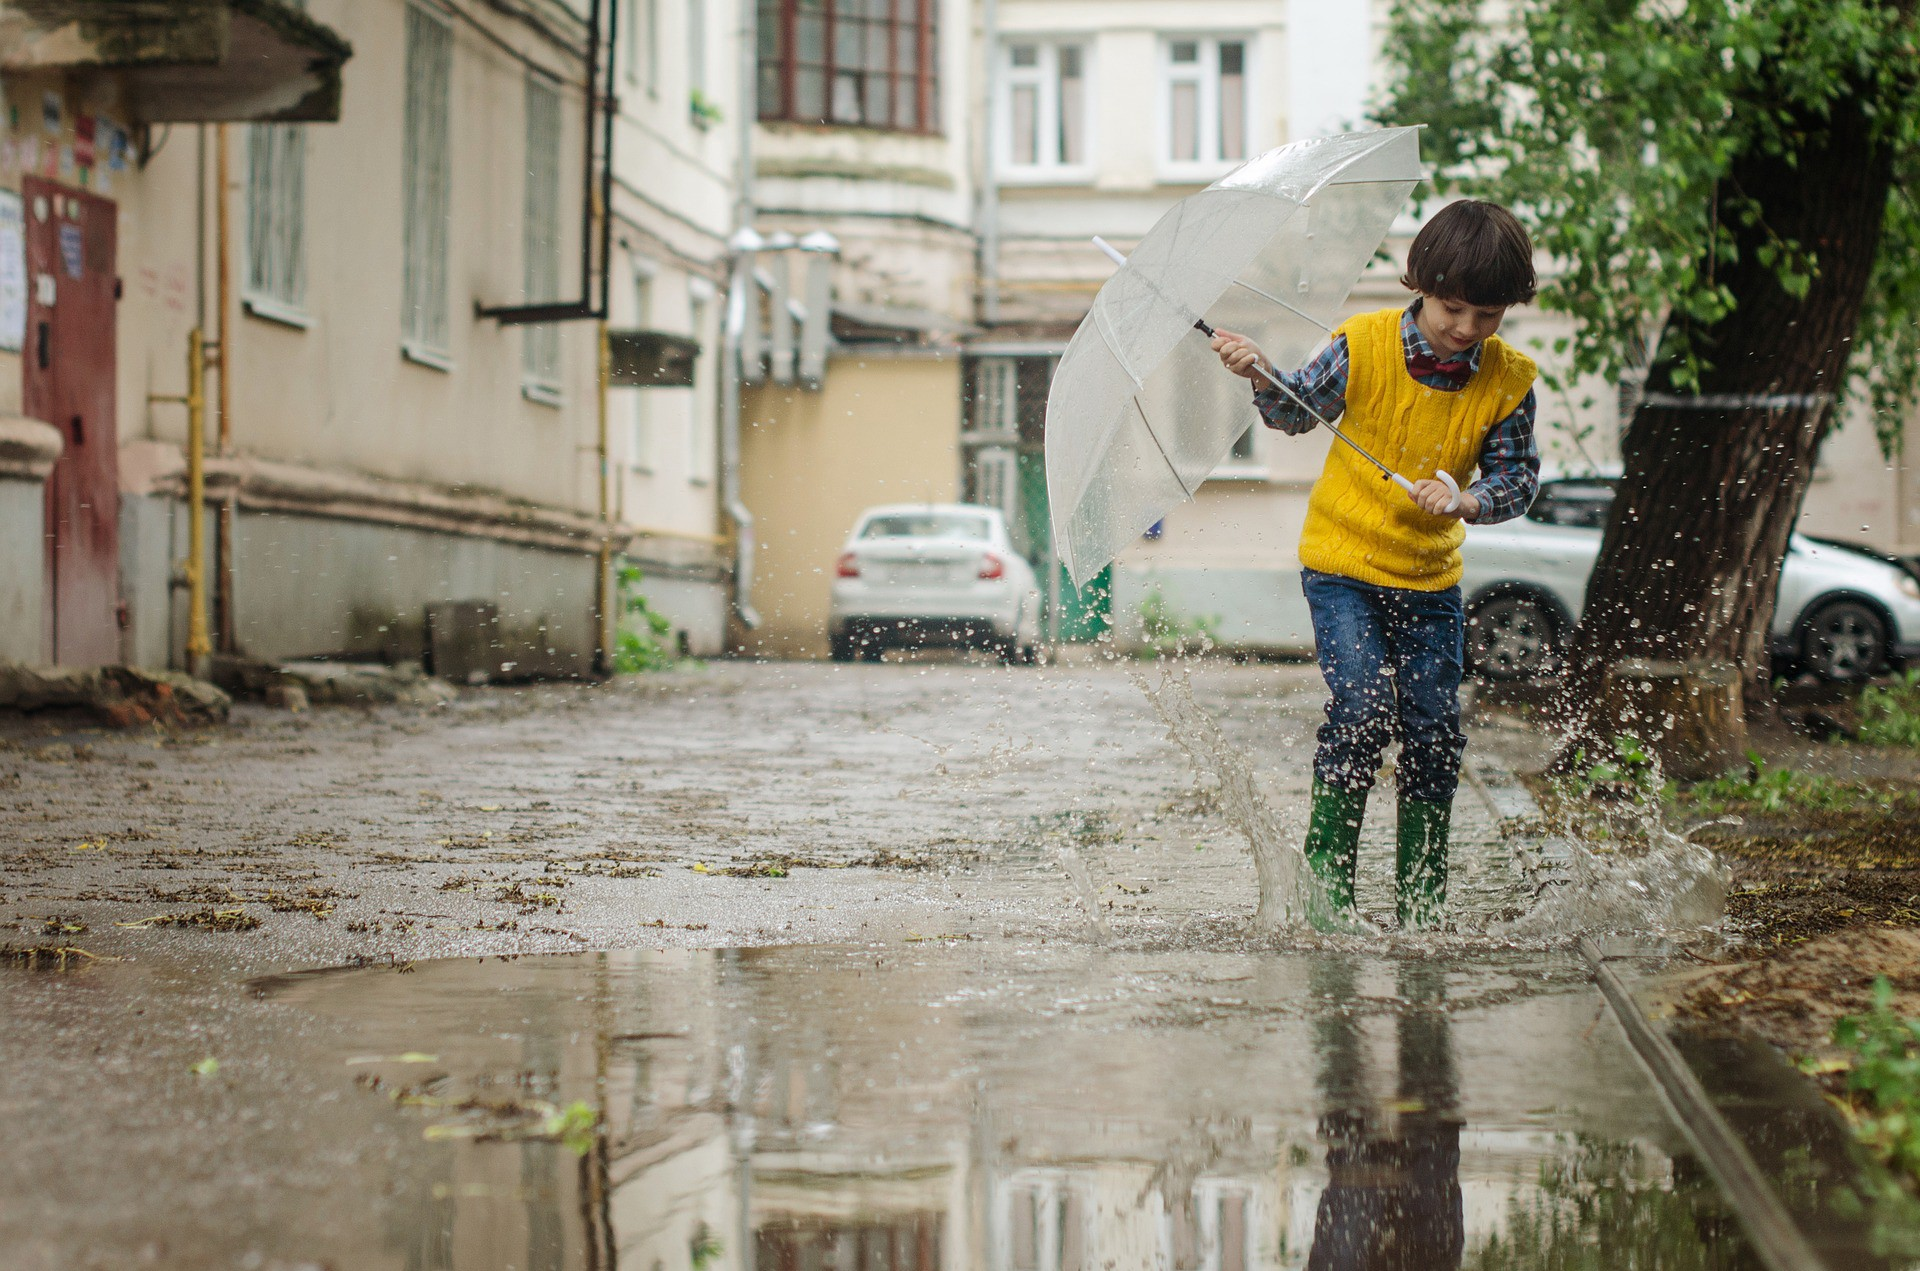 A happy boy with umbrella jumping in a puddle of water in a street